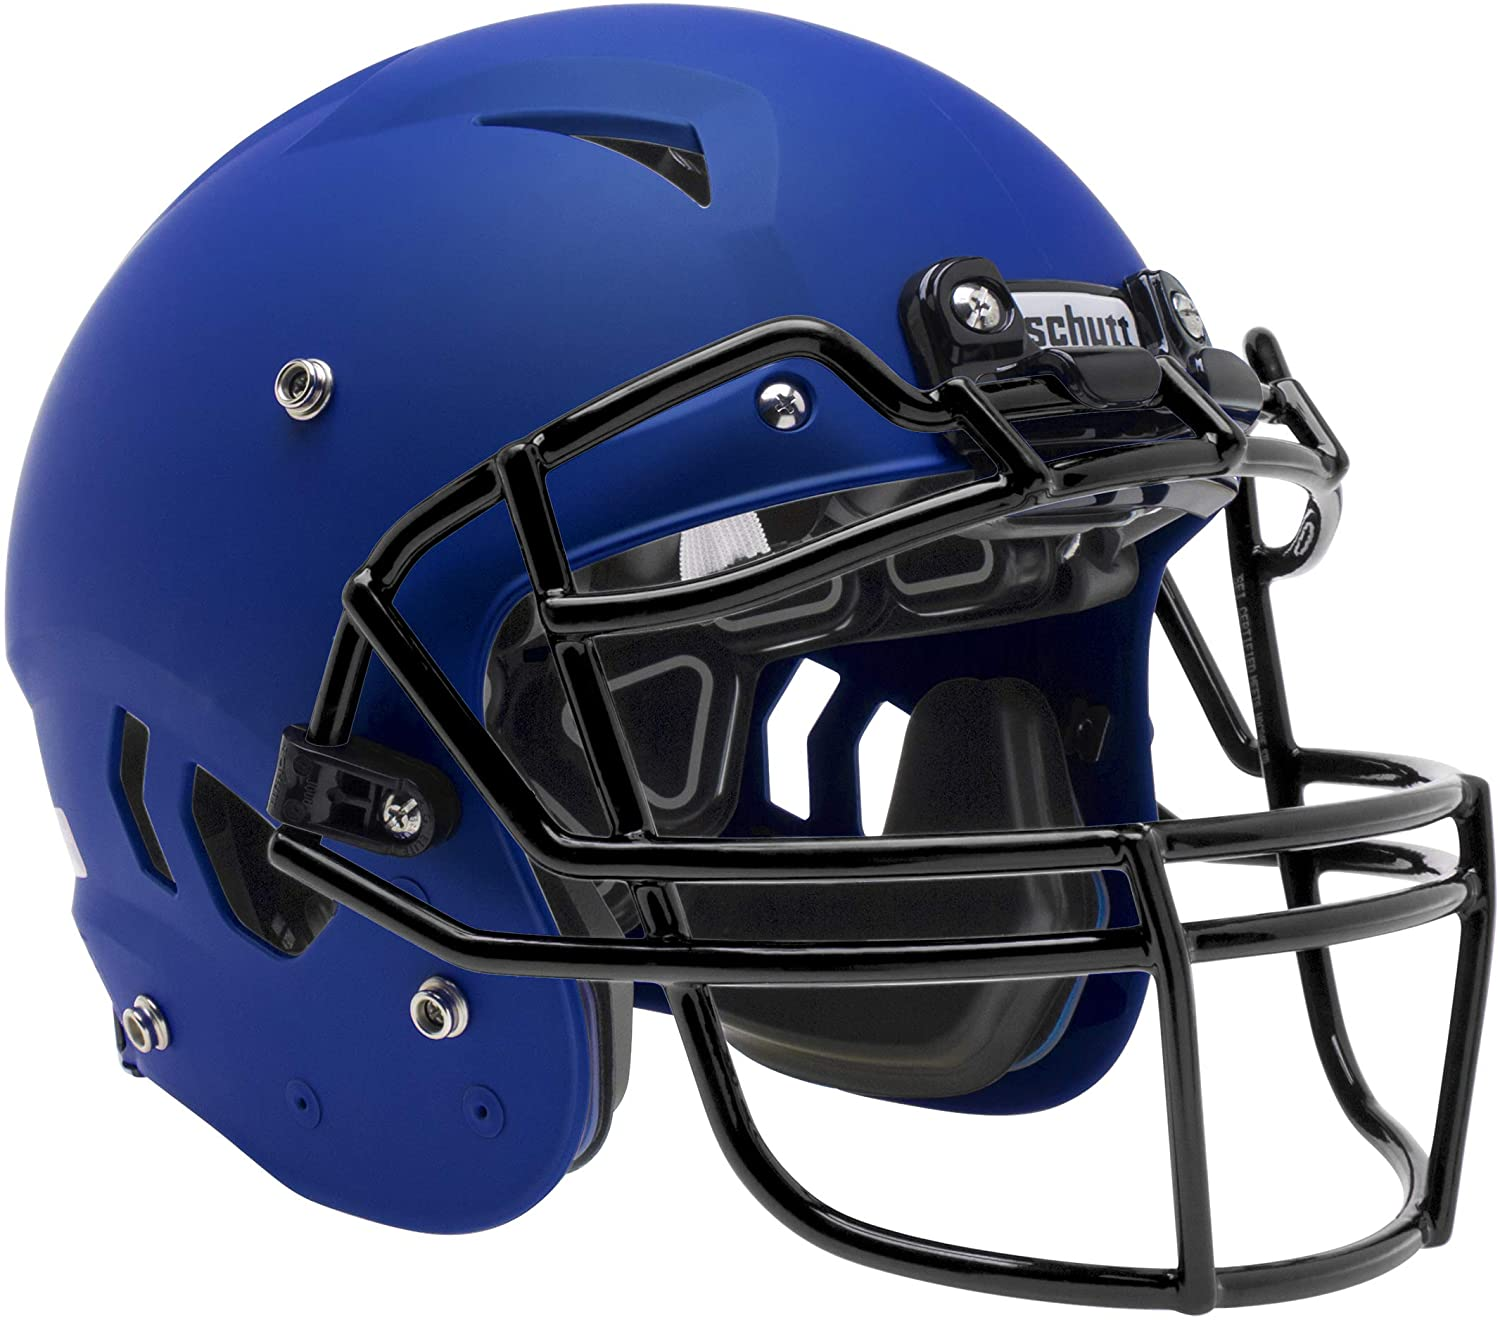 Schutt Sports Vengeance A11 Youth Football Helmet (Facemask NOT Included), Royal Blue, X-Large